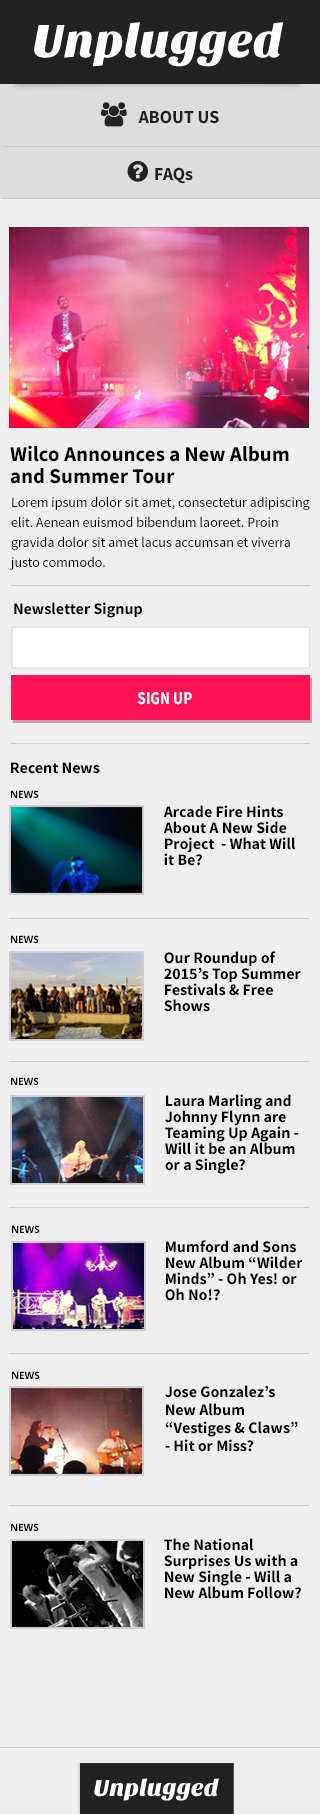 02-unplugged-design-homepage-mobile.png